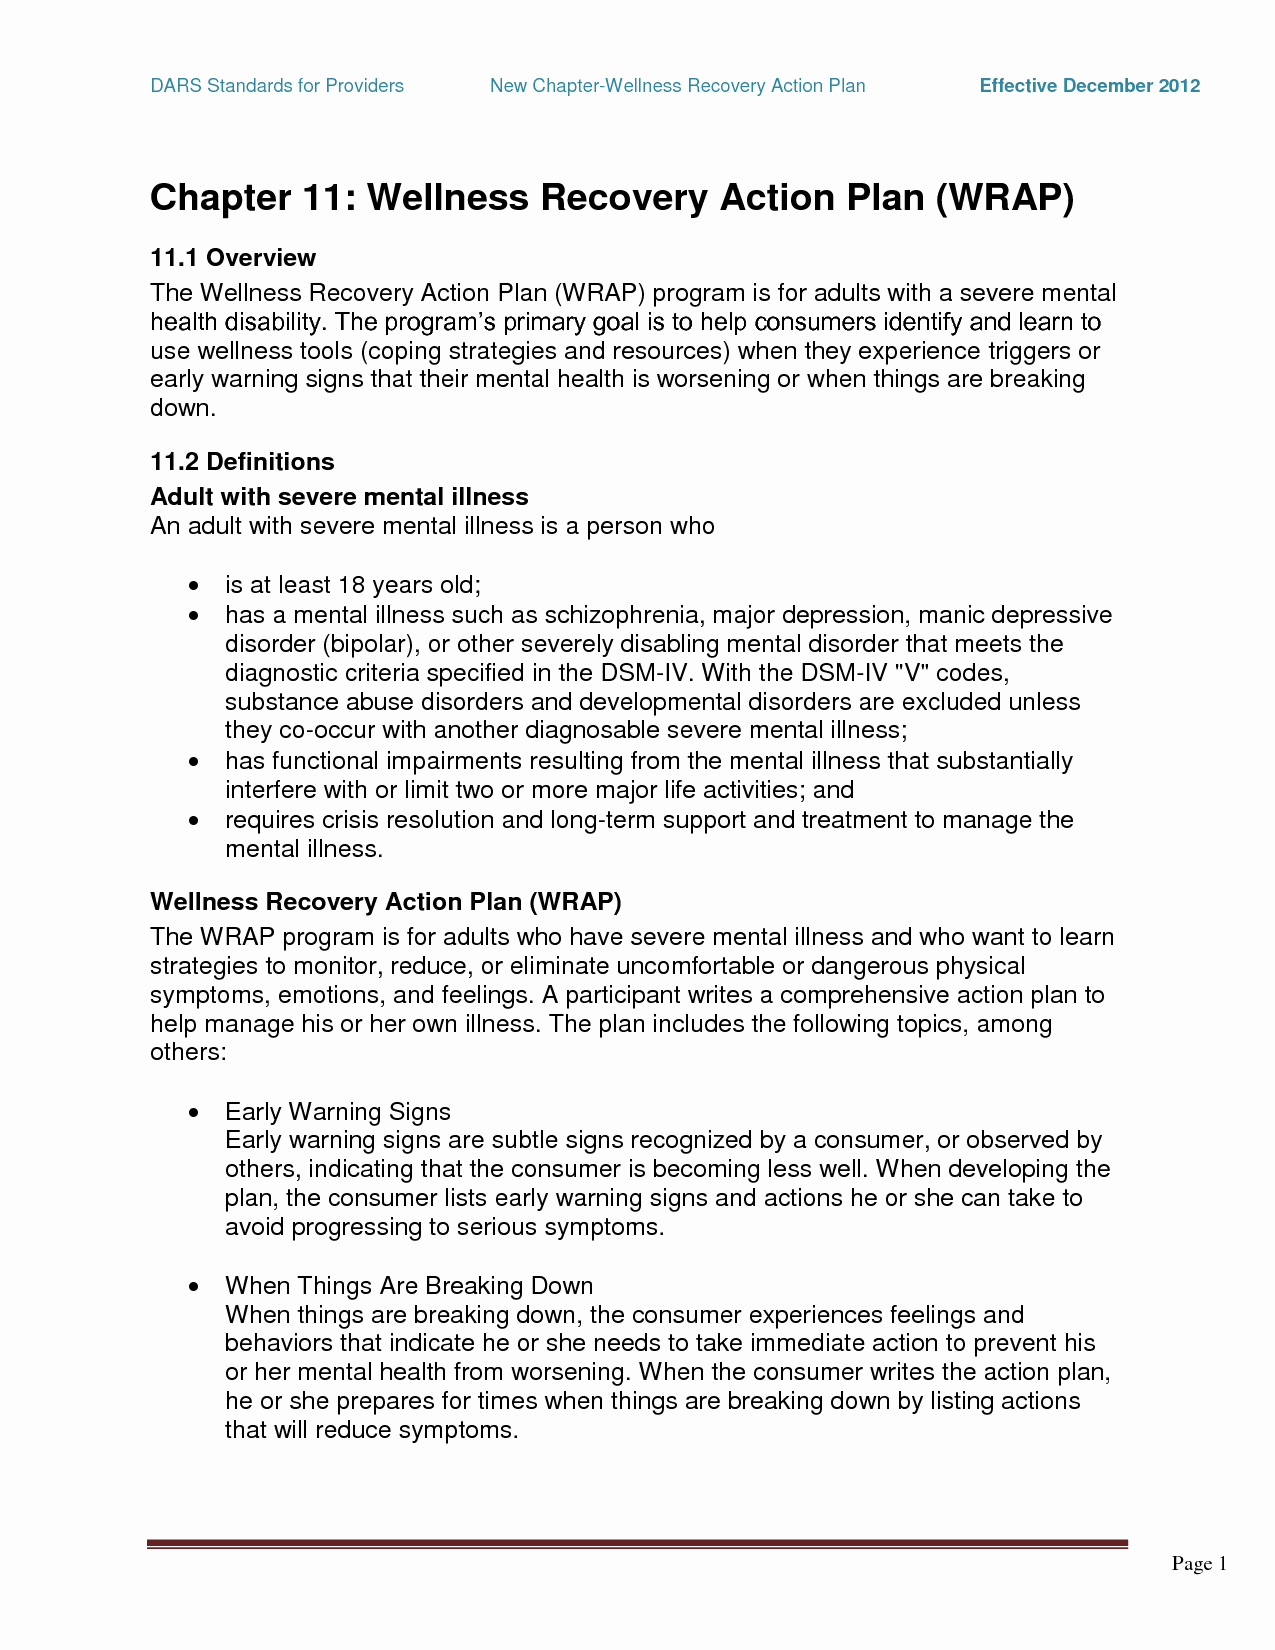 Mental Health Crisis Plan Template New Wrap Mental Health